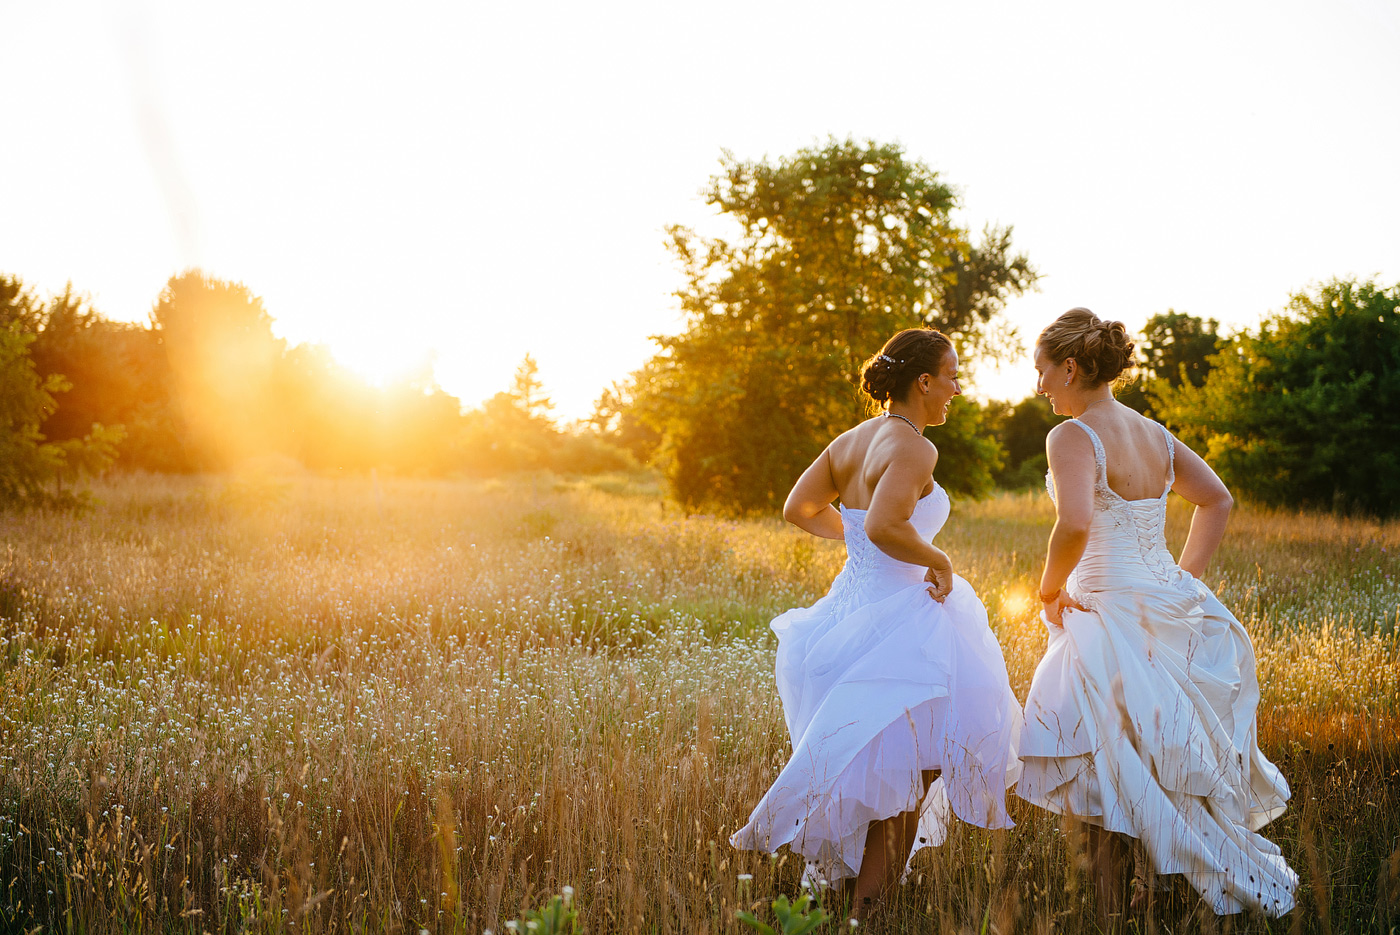 brides dancing in sunset light